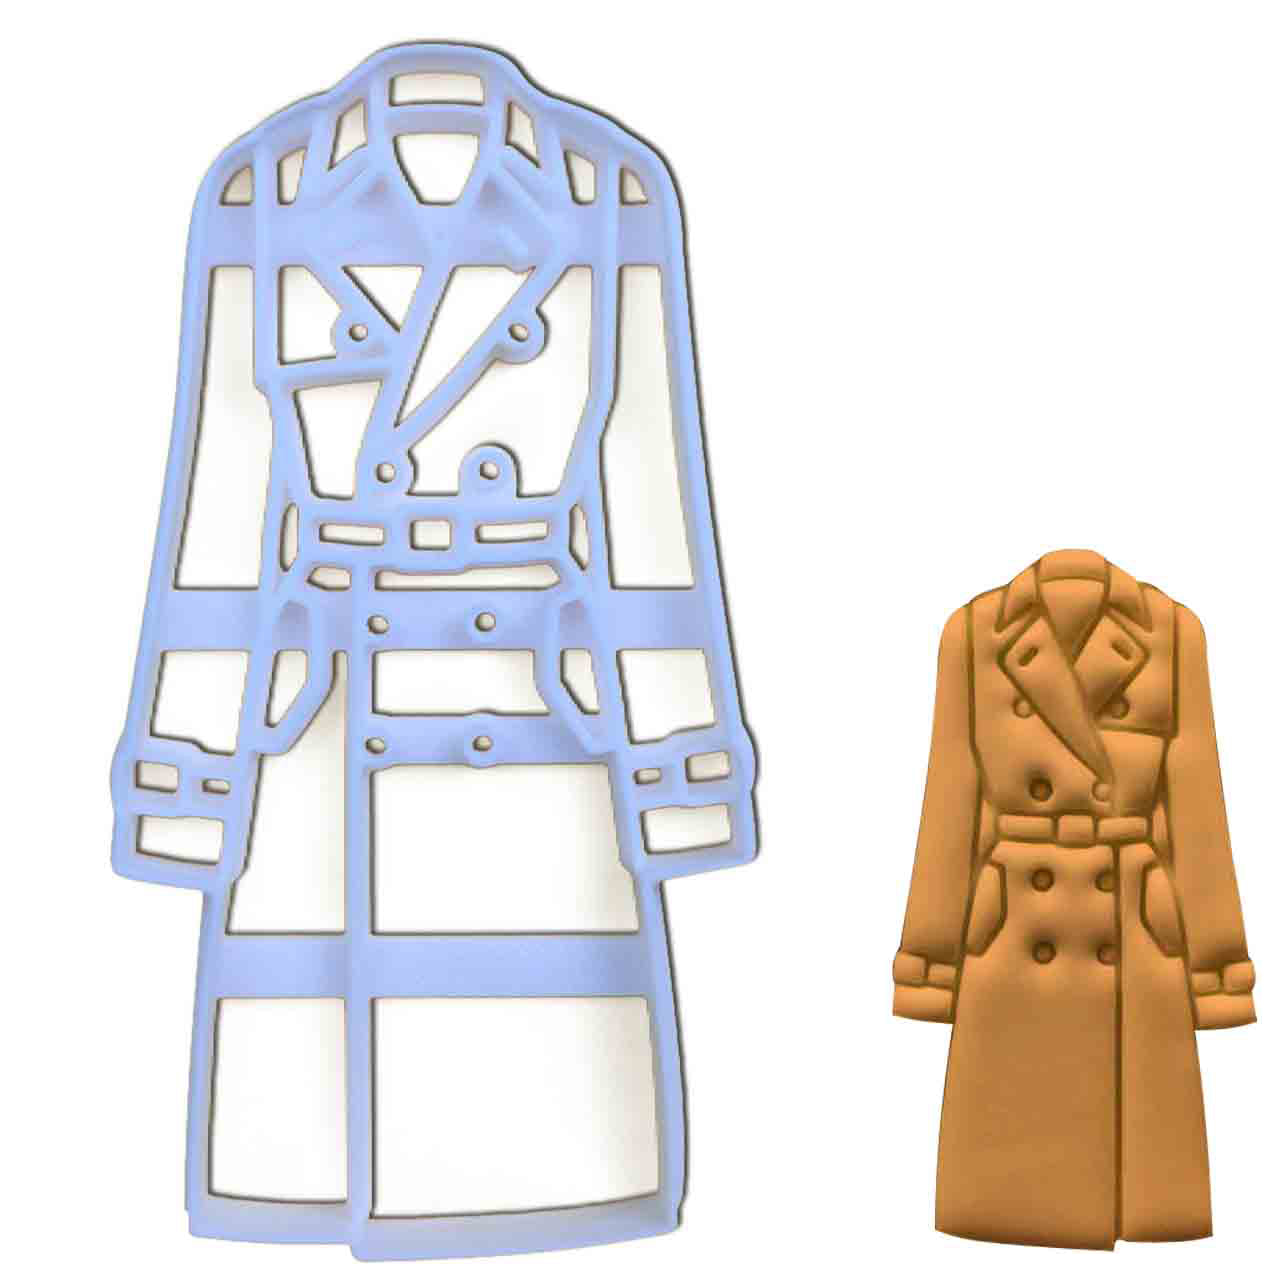 Trench Coat Cookie Cutter